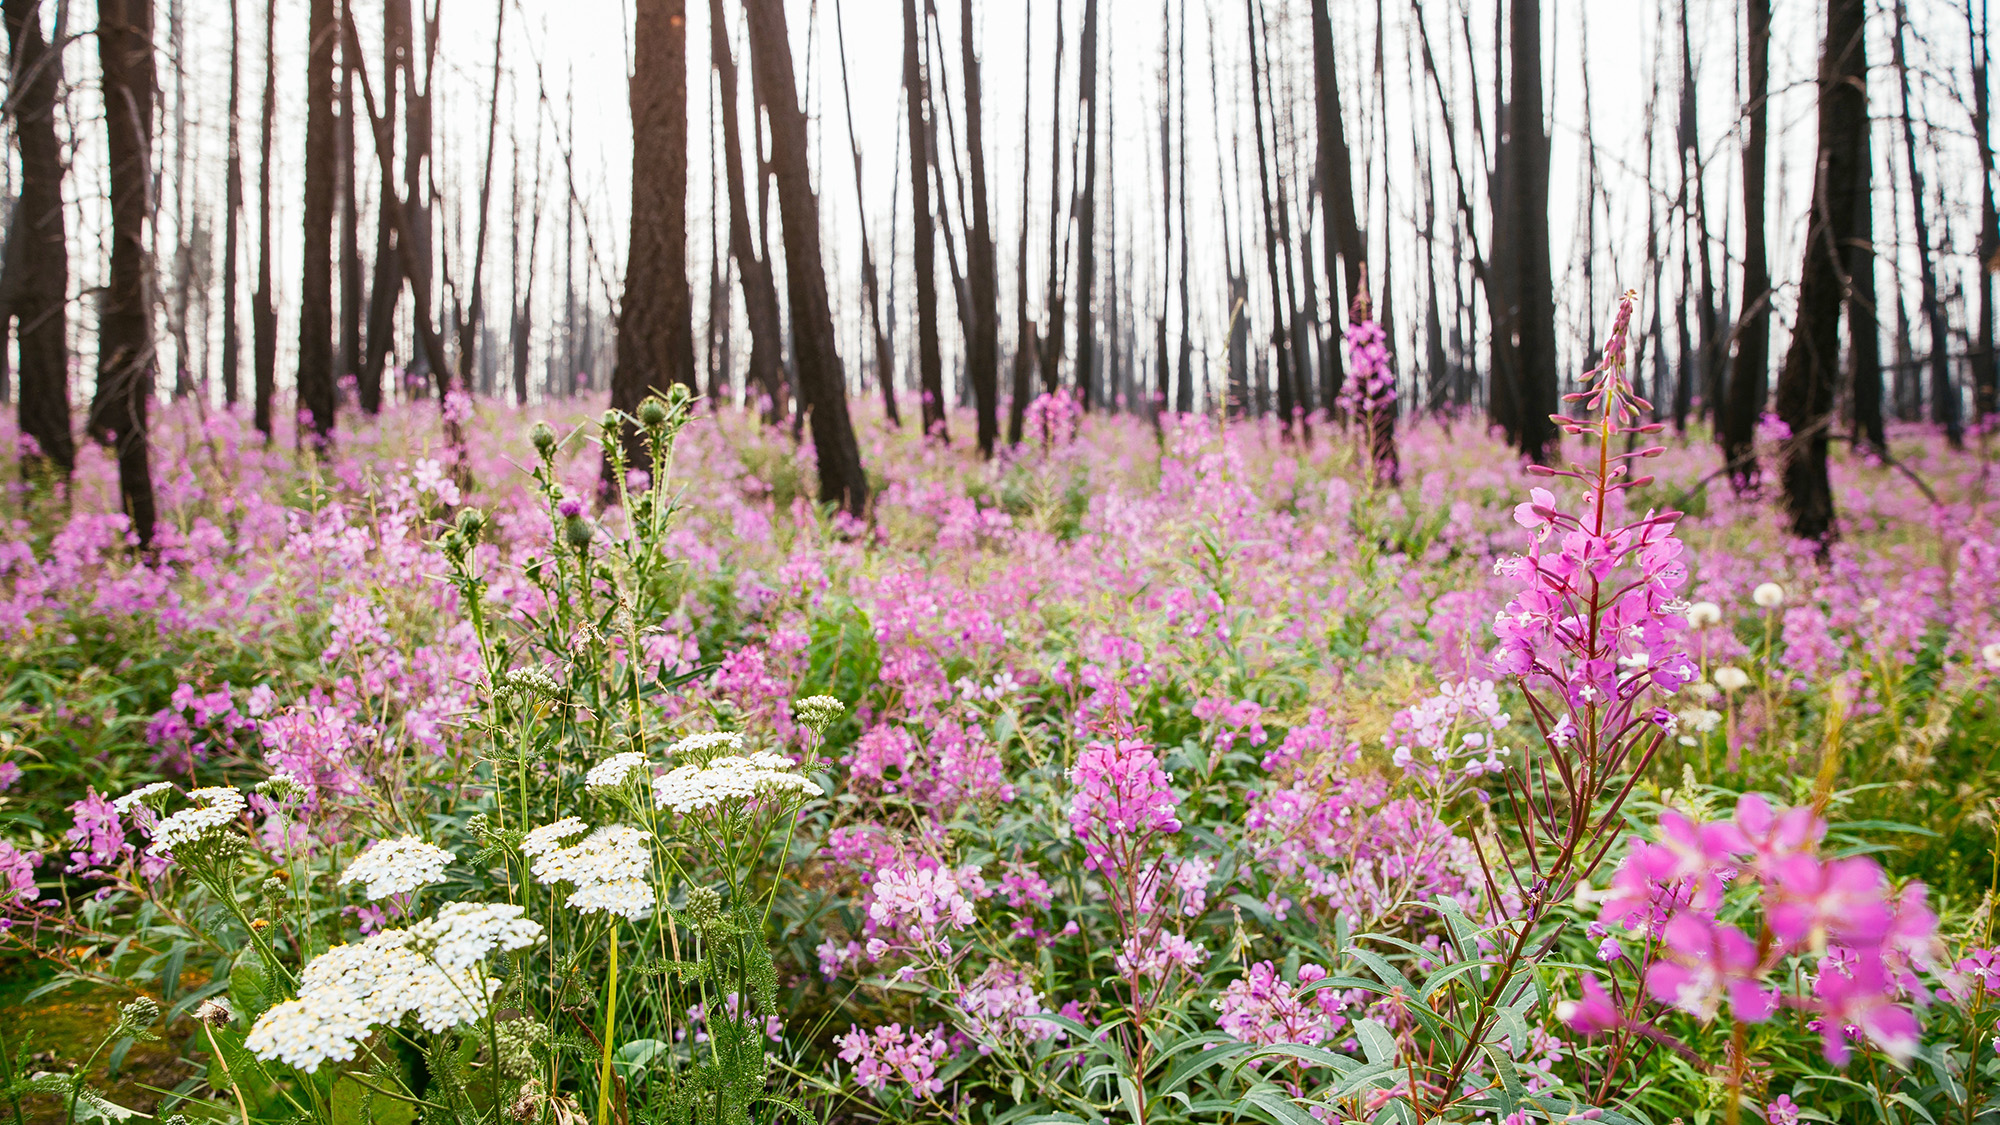 A Sea Of Magenta Pink Fireweed Wildflowers at our Wildland Private Nature Reserve